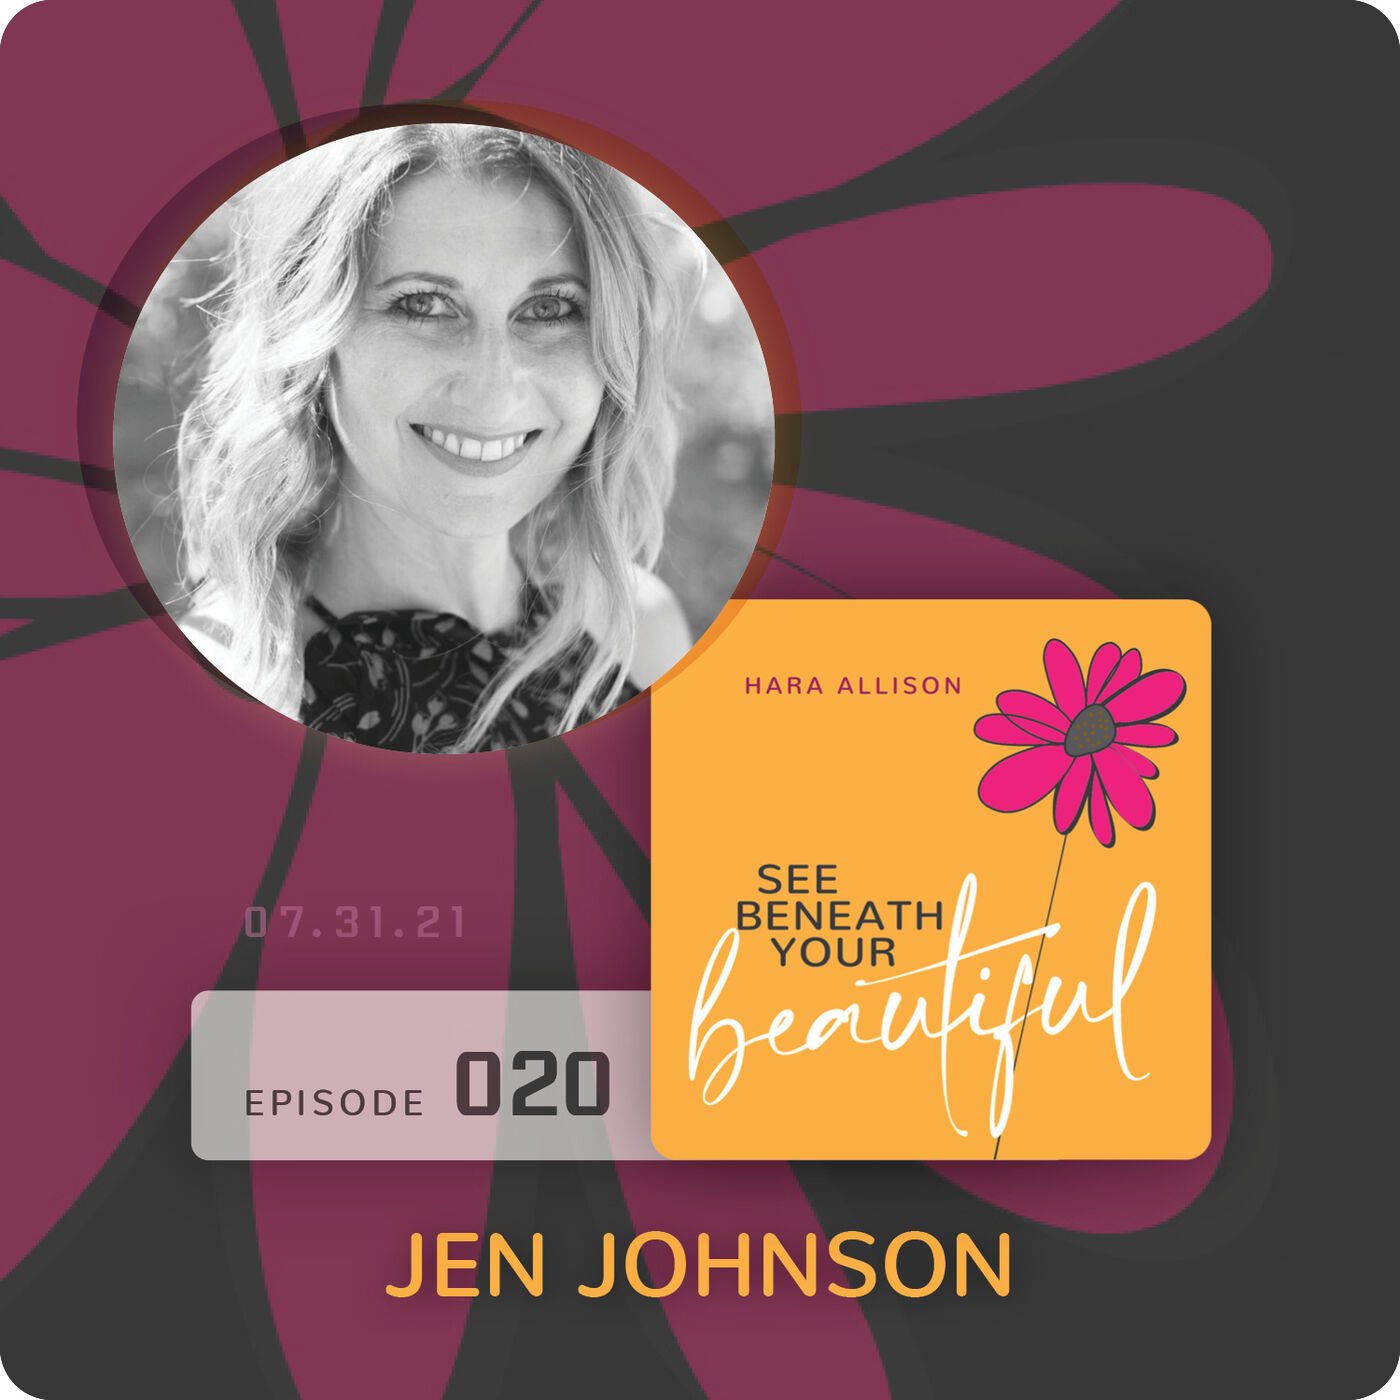 020. Jen Johnson discusses widowhood, mentoring, dating again, being an educator of love, raising two sons, surrendering to the universe and gifts in grief